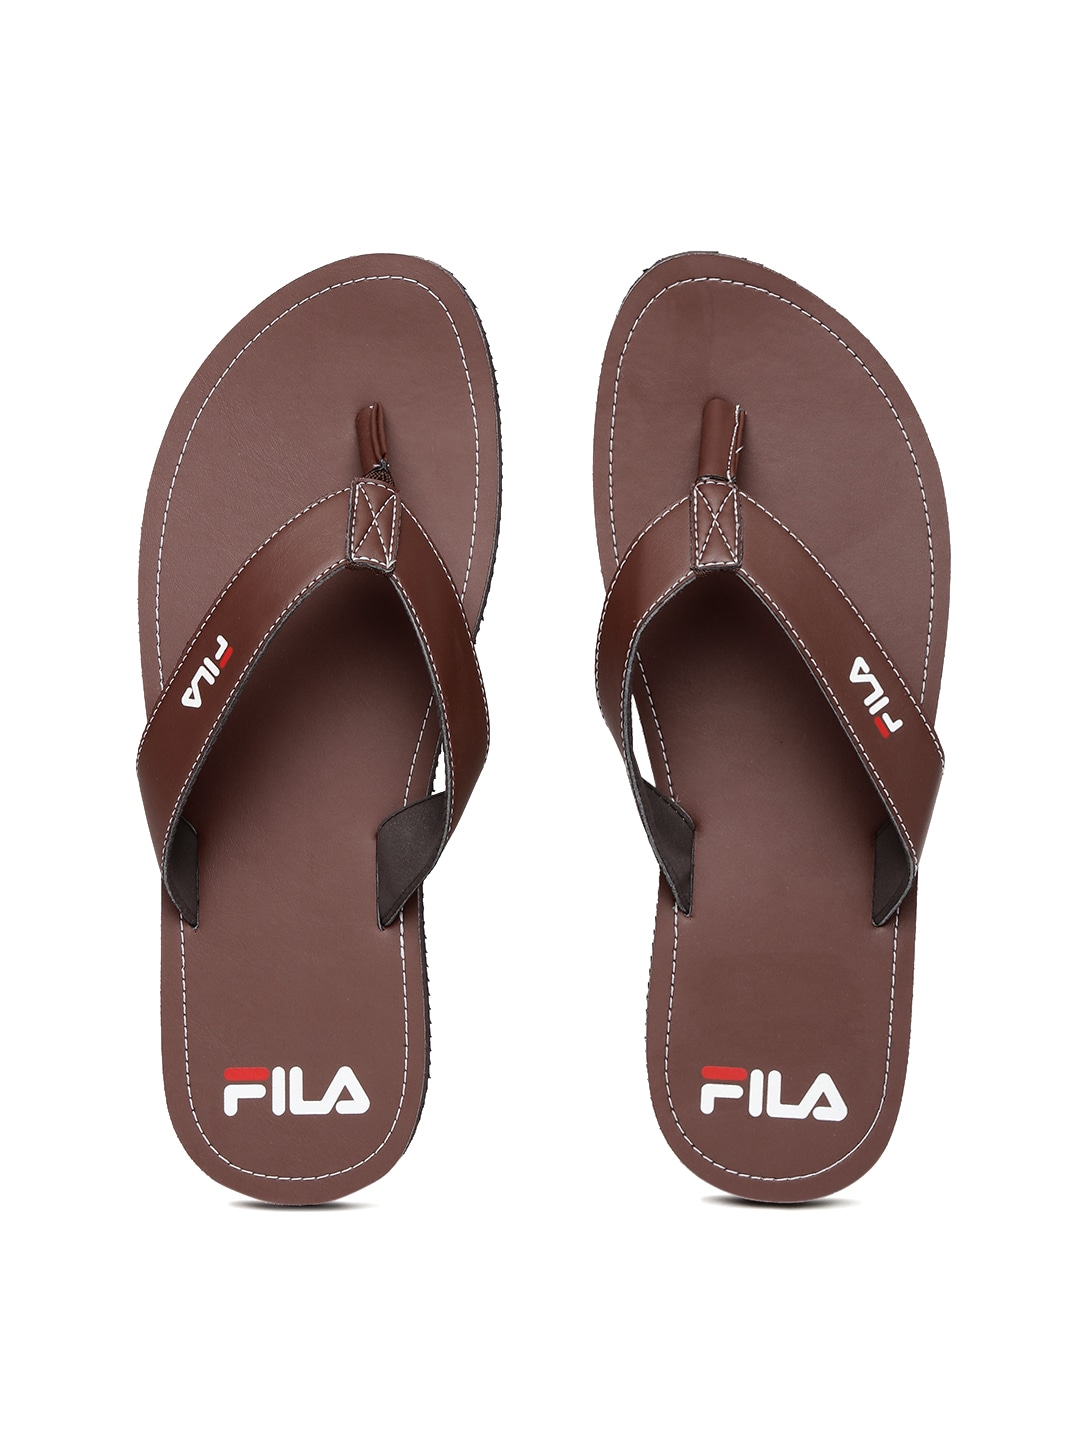 FILA Men Brown Soft Flip-Flops image